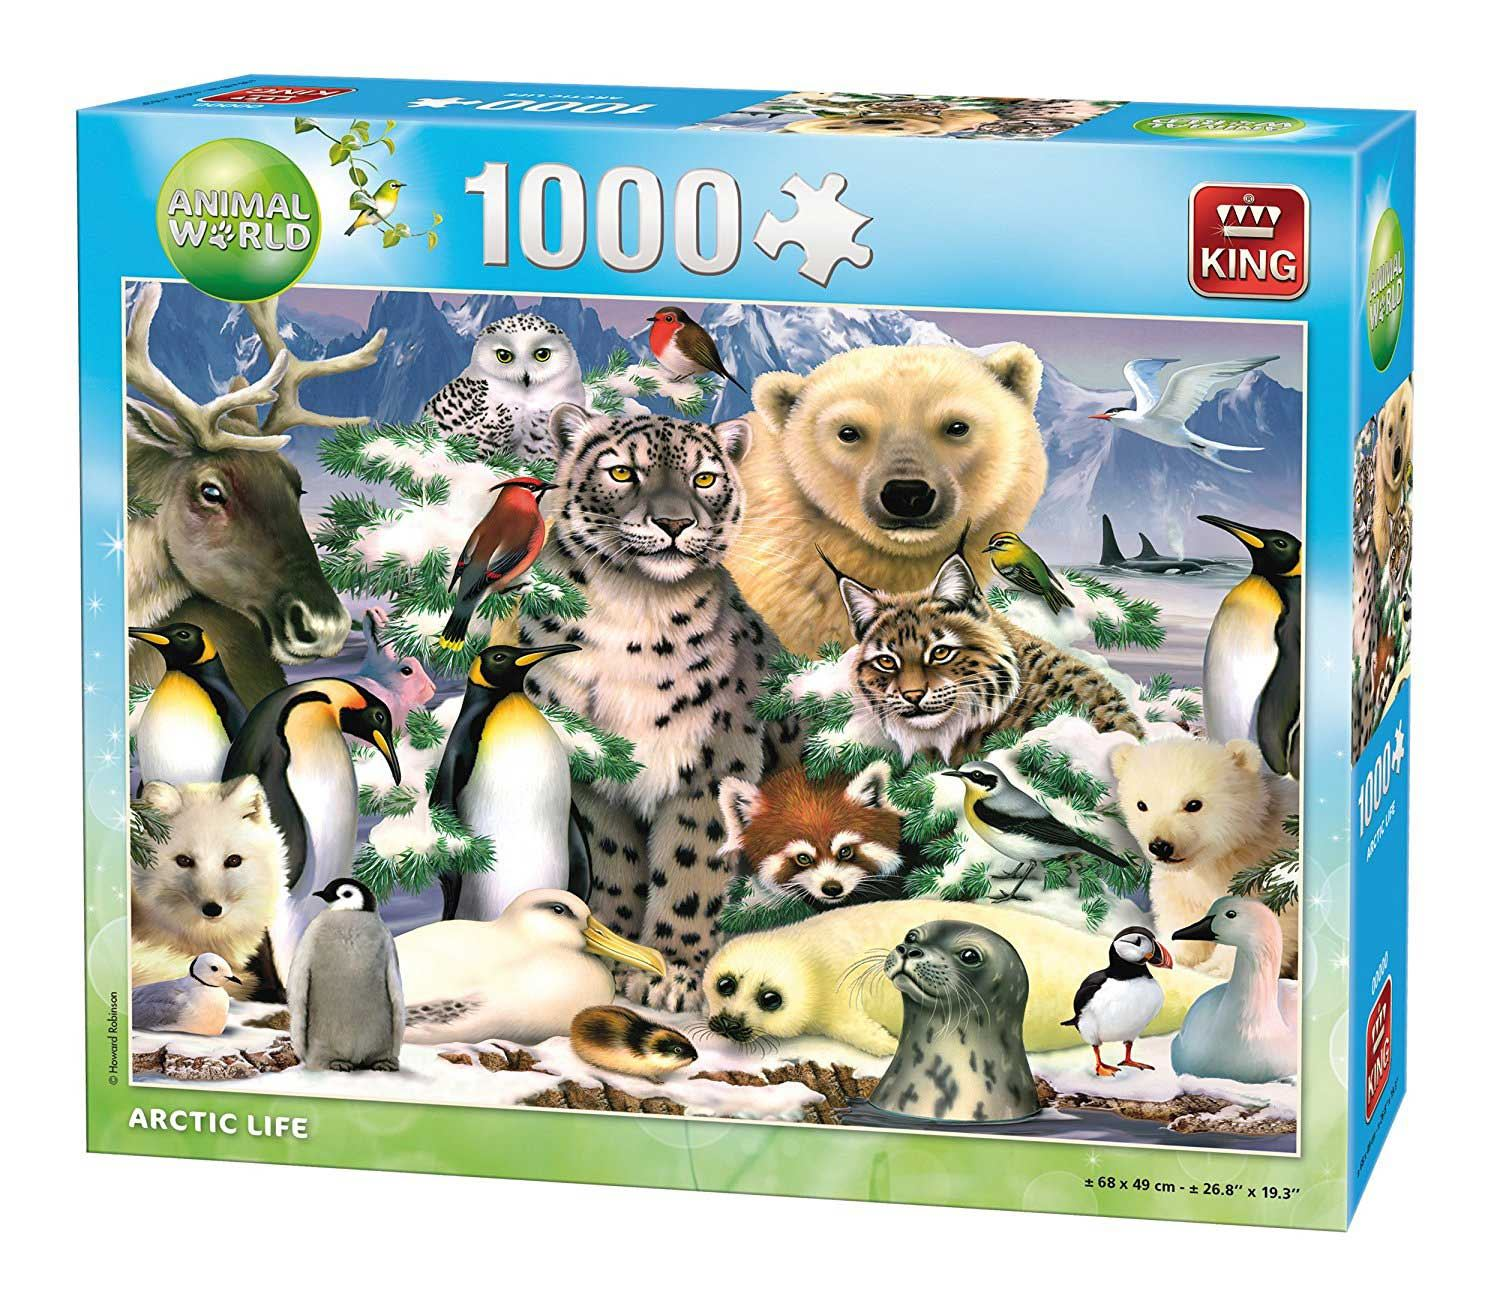 King Animal World Arctic Jigsaw Puzzle (1000 Pieces)